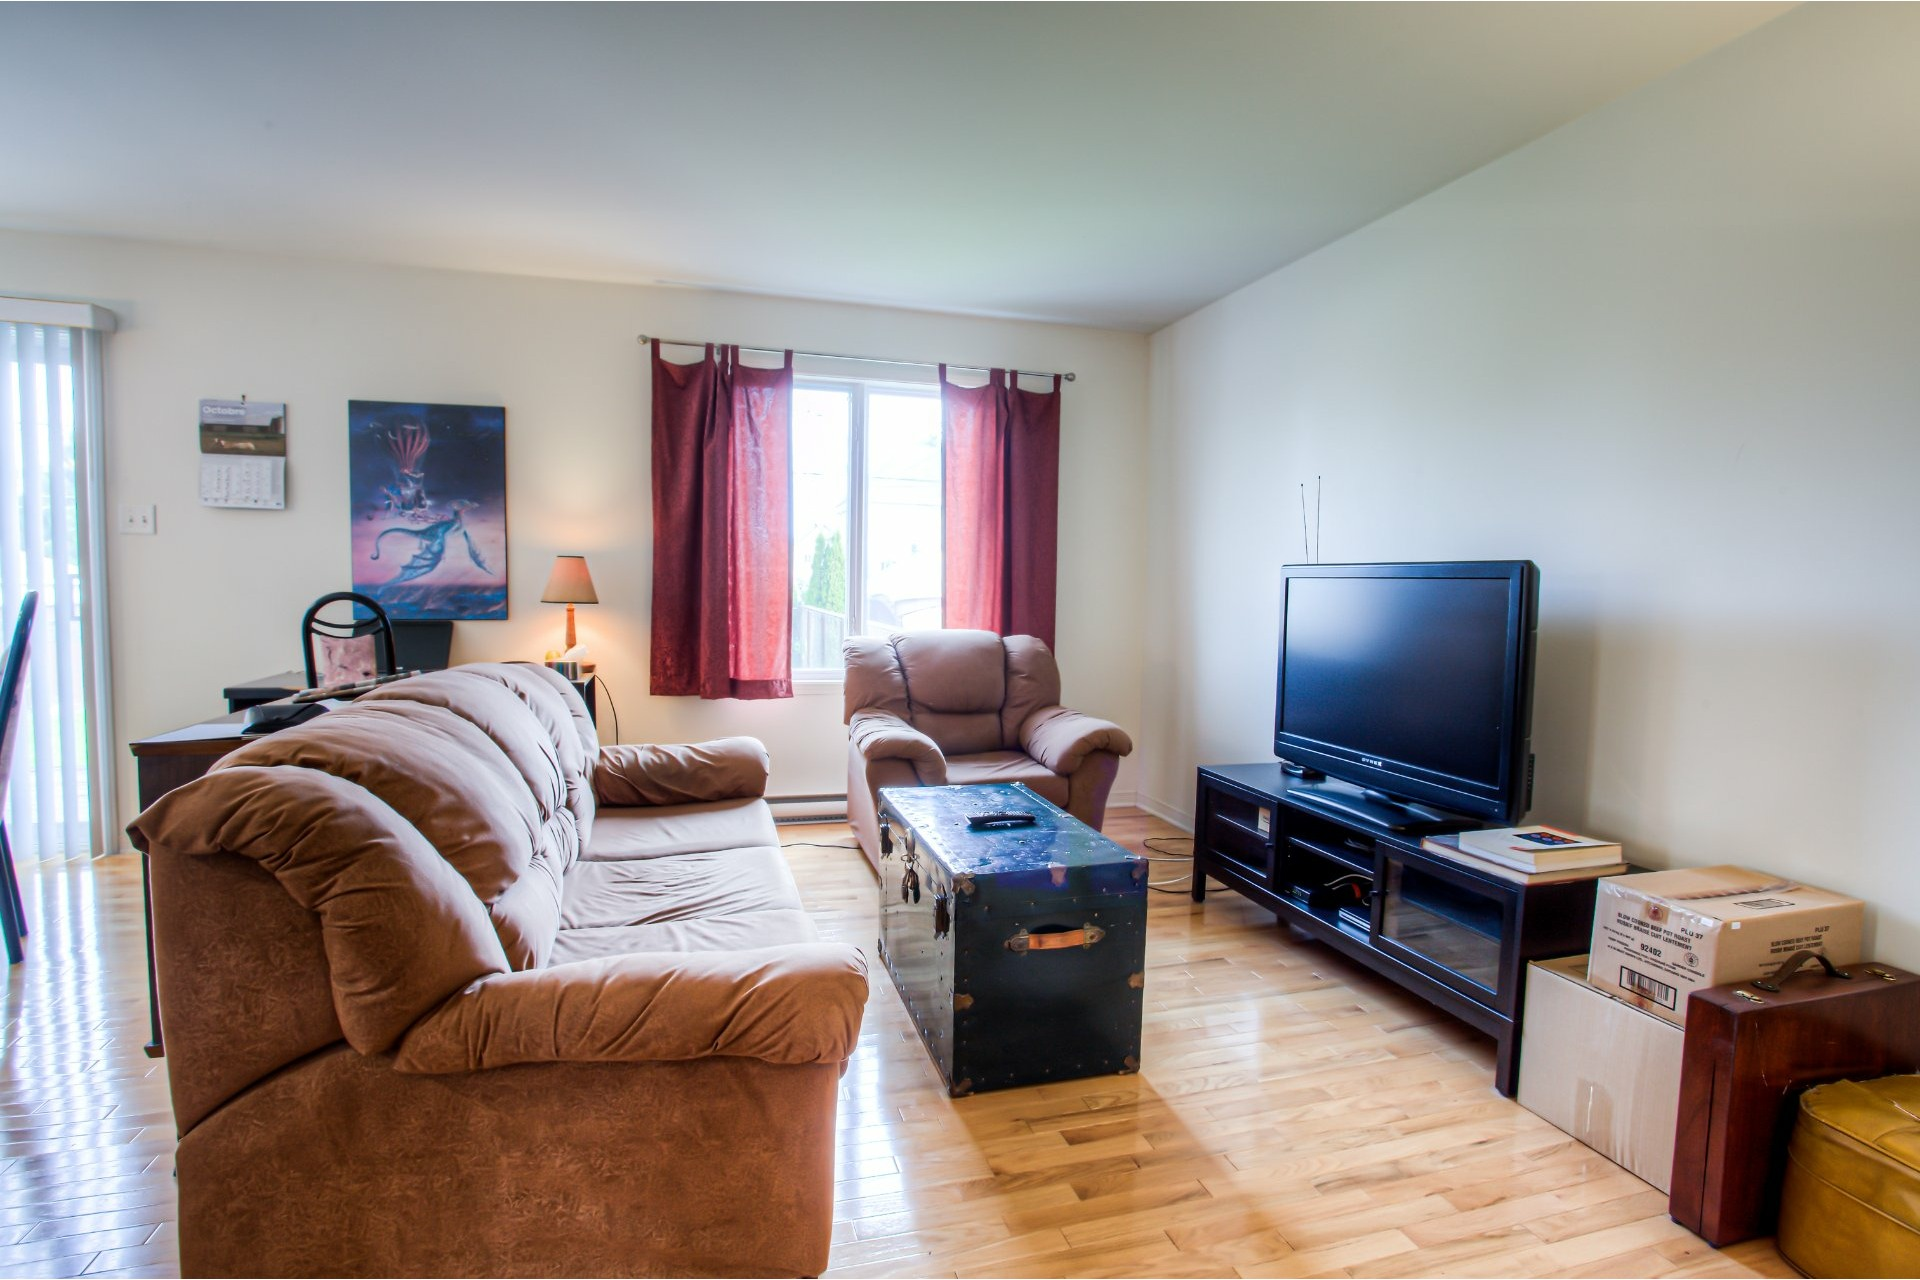 image 11 - House For sale Vaudreuil-Dorion - 8 rooms